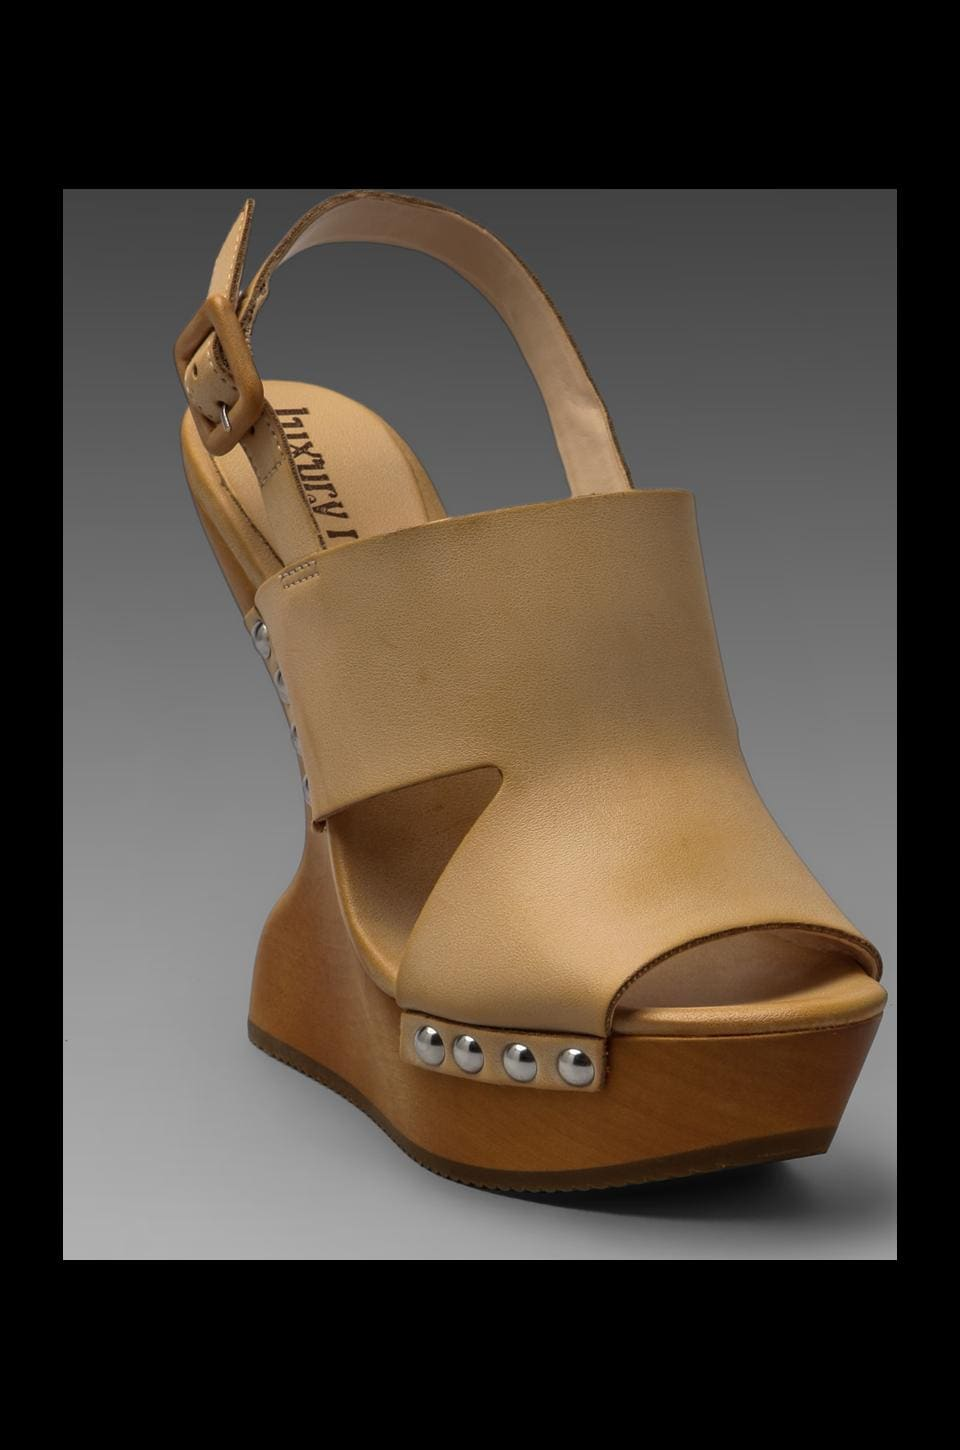 Luxury Rebel Giada Wedge Sandal in Flesh